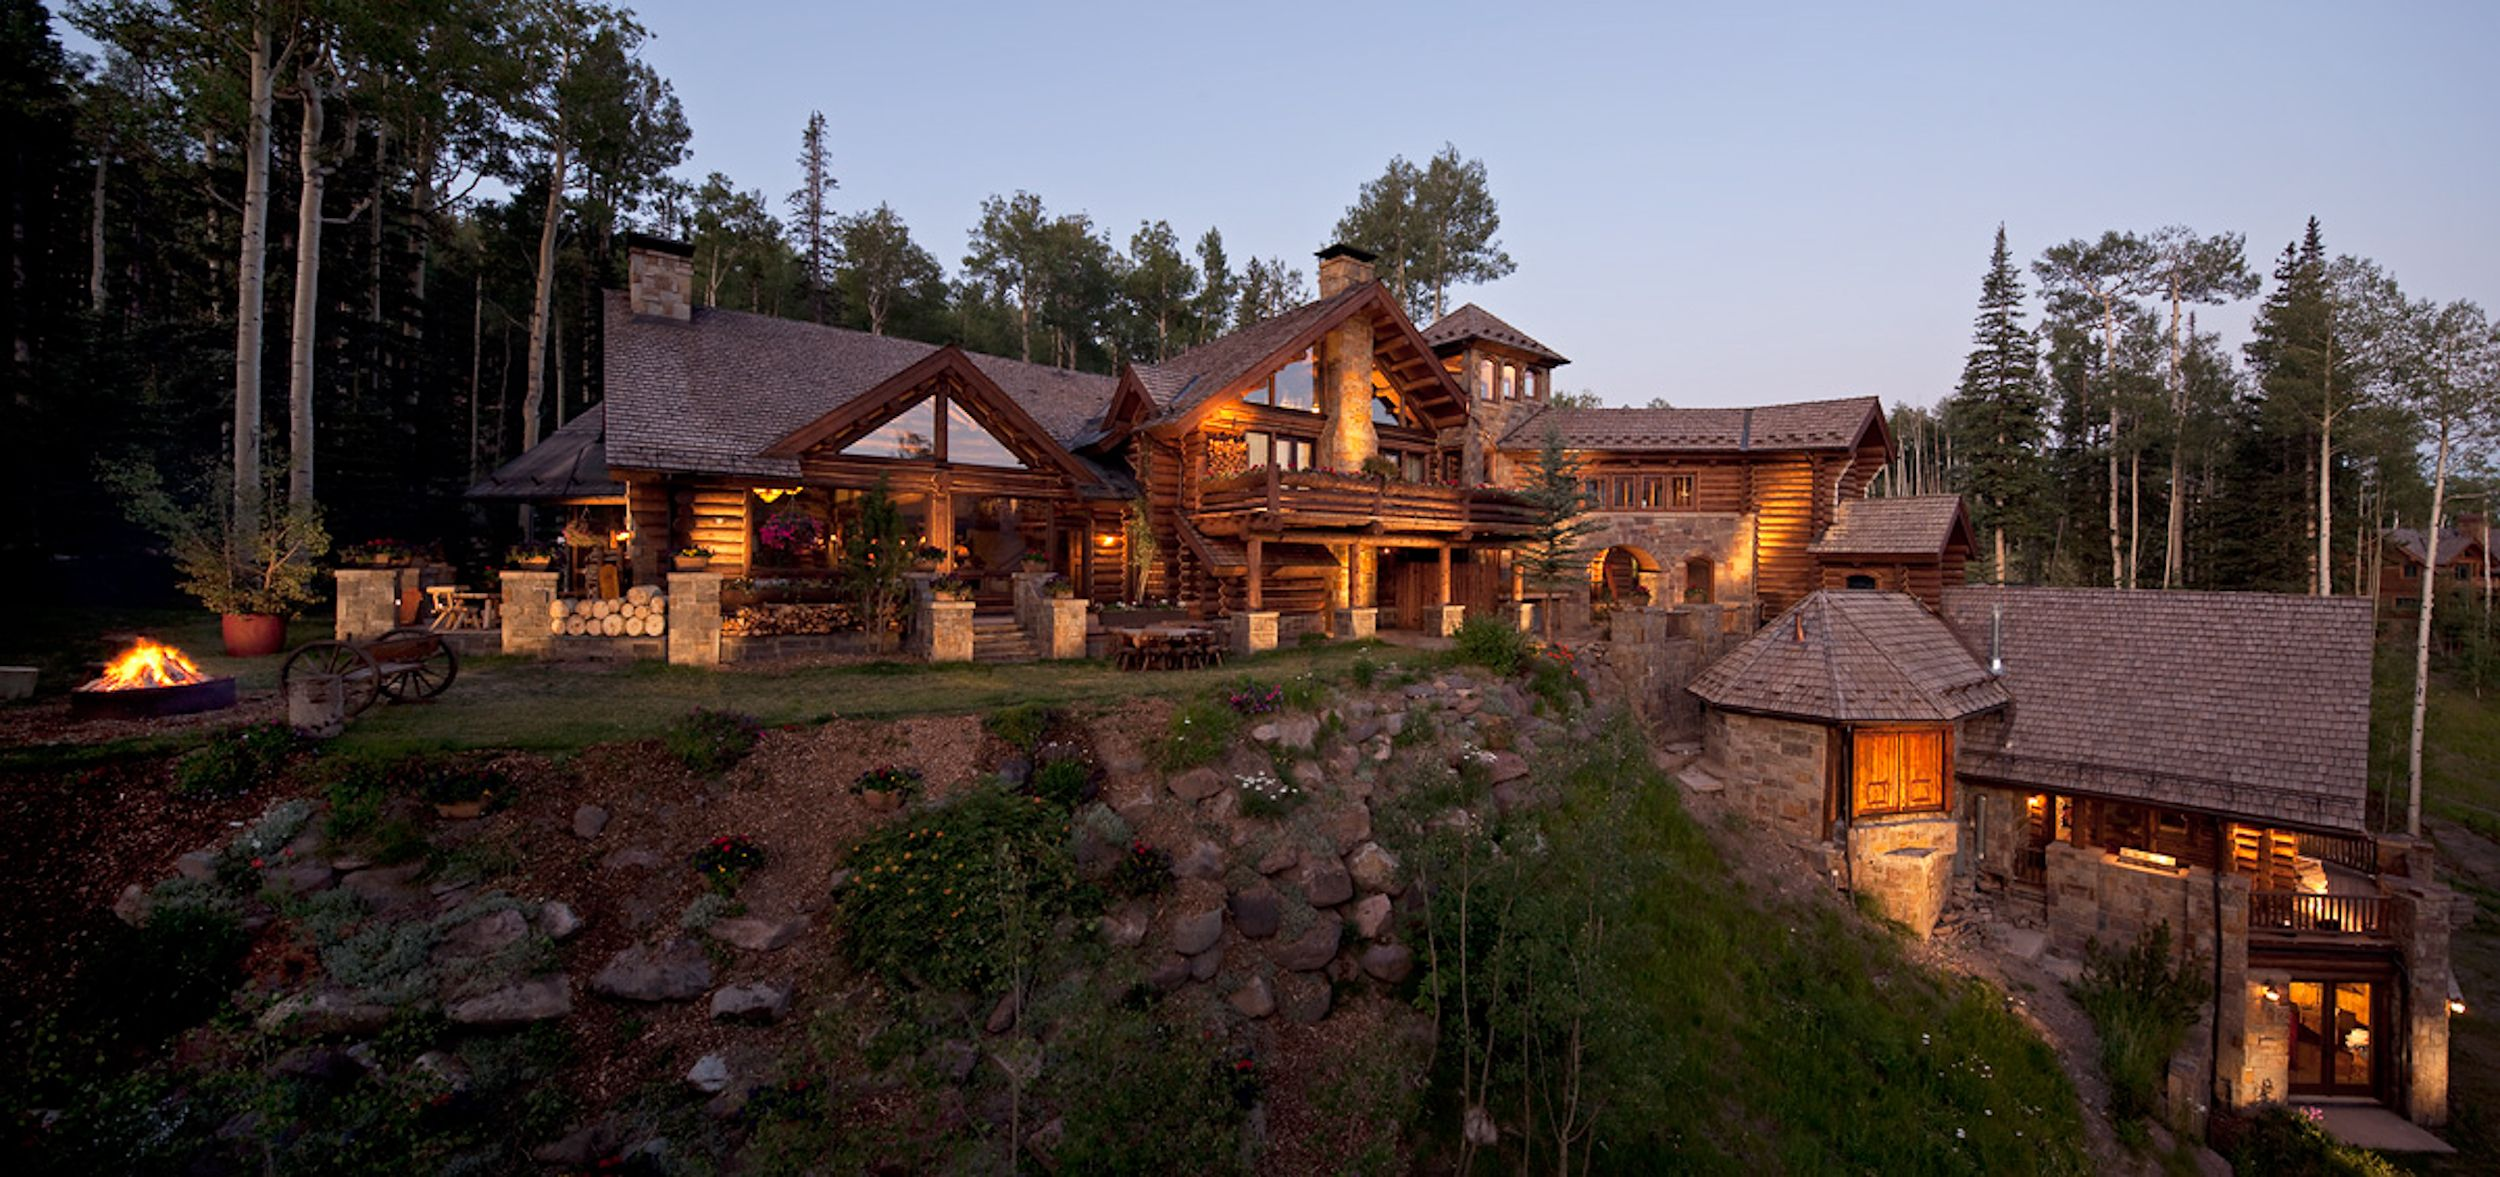 Pics Of Colorado Homes Castlewood Telluride Rentals